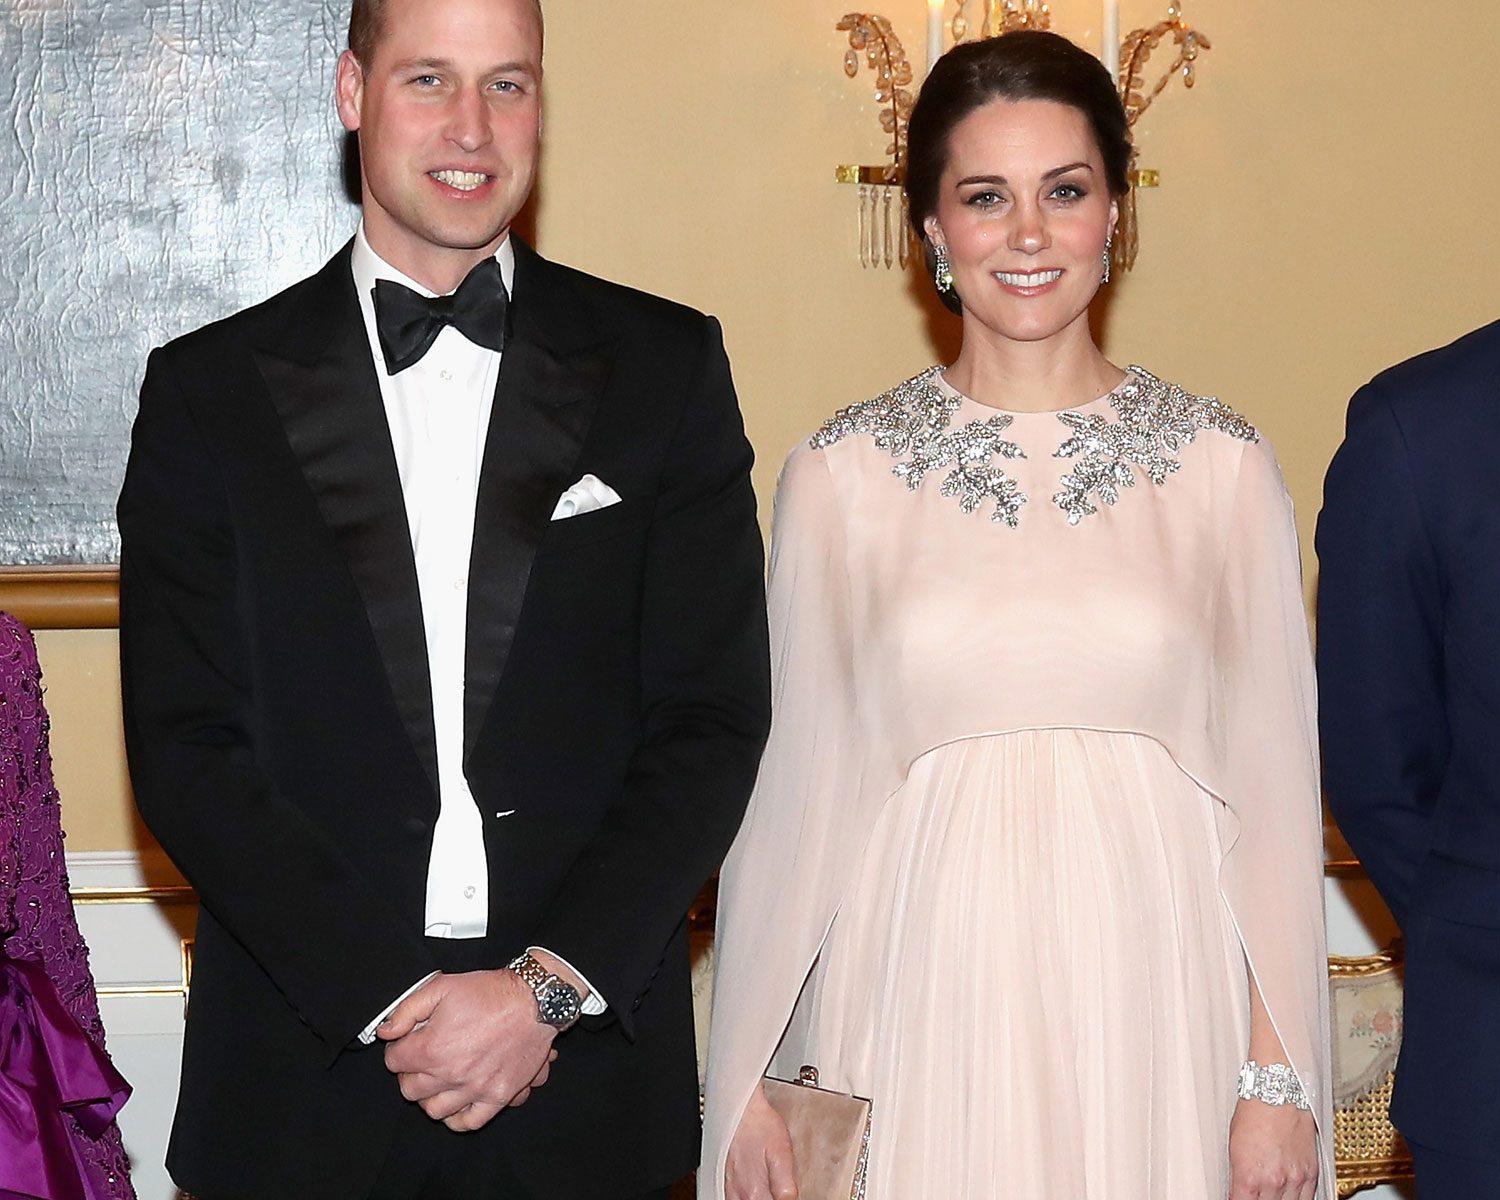 Kate Middleton Wore Her Wedding Dress Designer for Black-Tie Dinner